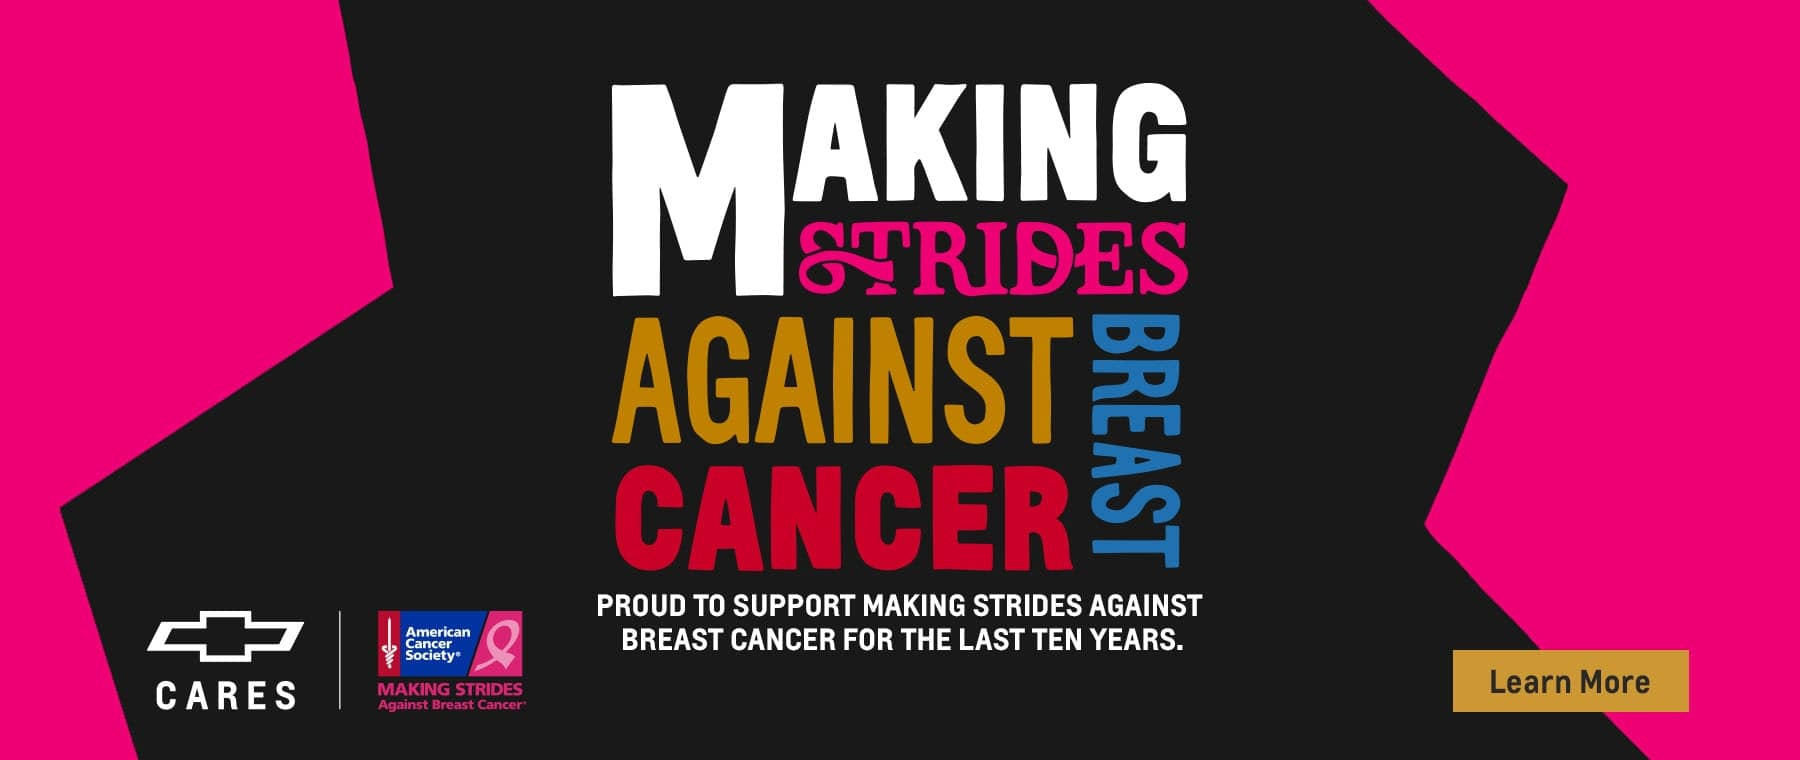 Proud to support making strides against breast cancer for the last ten years.